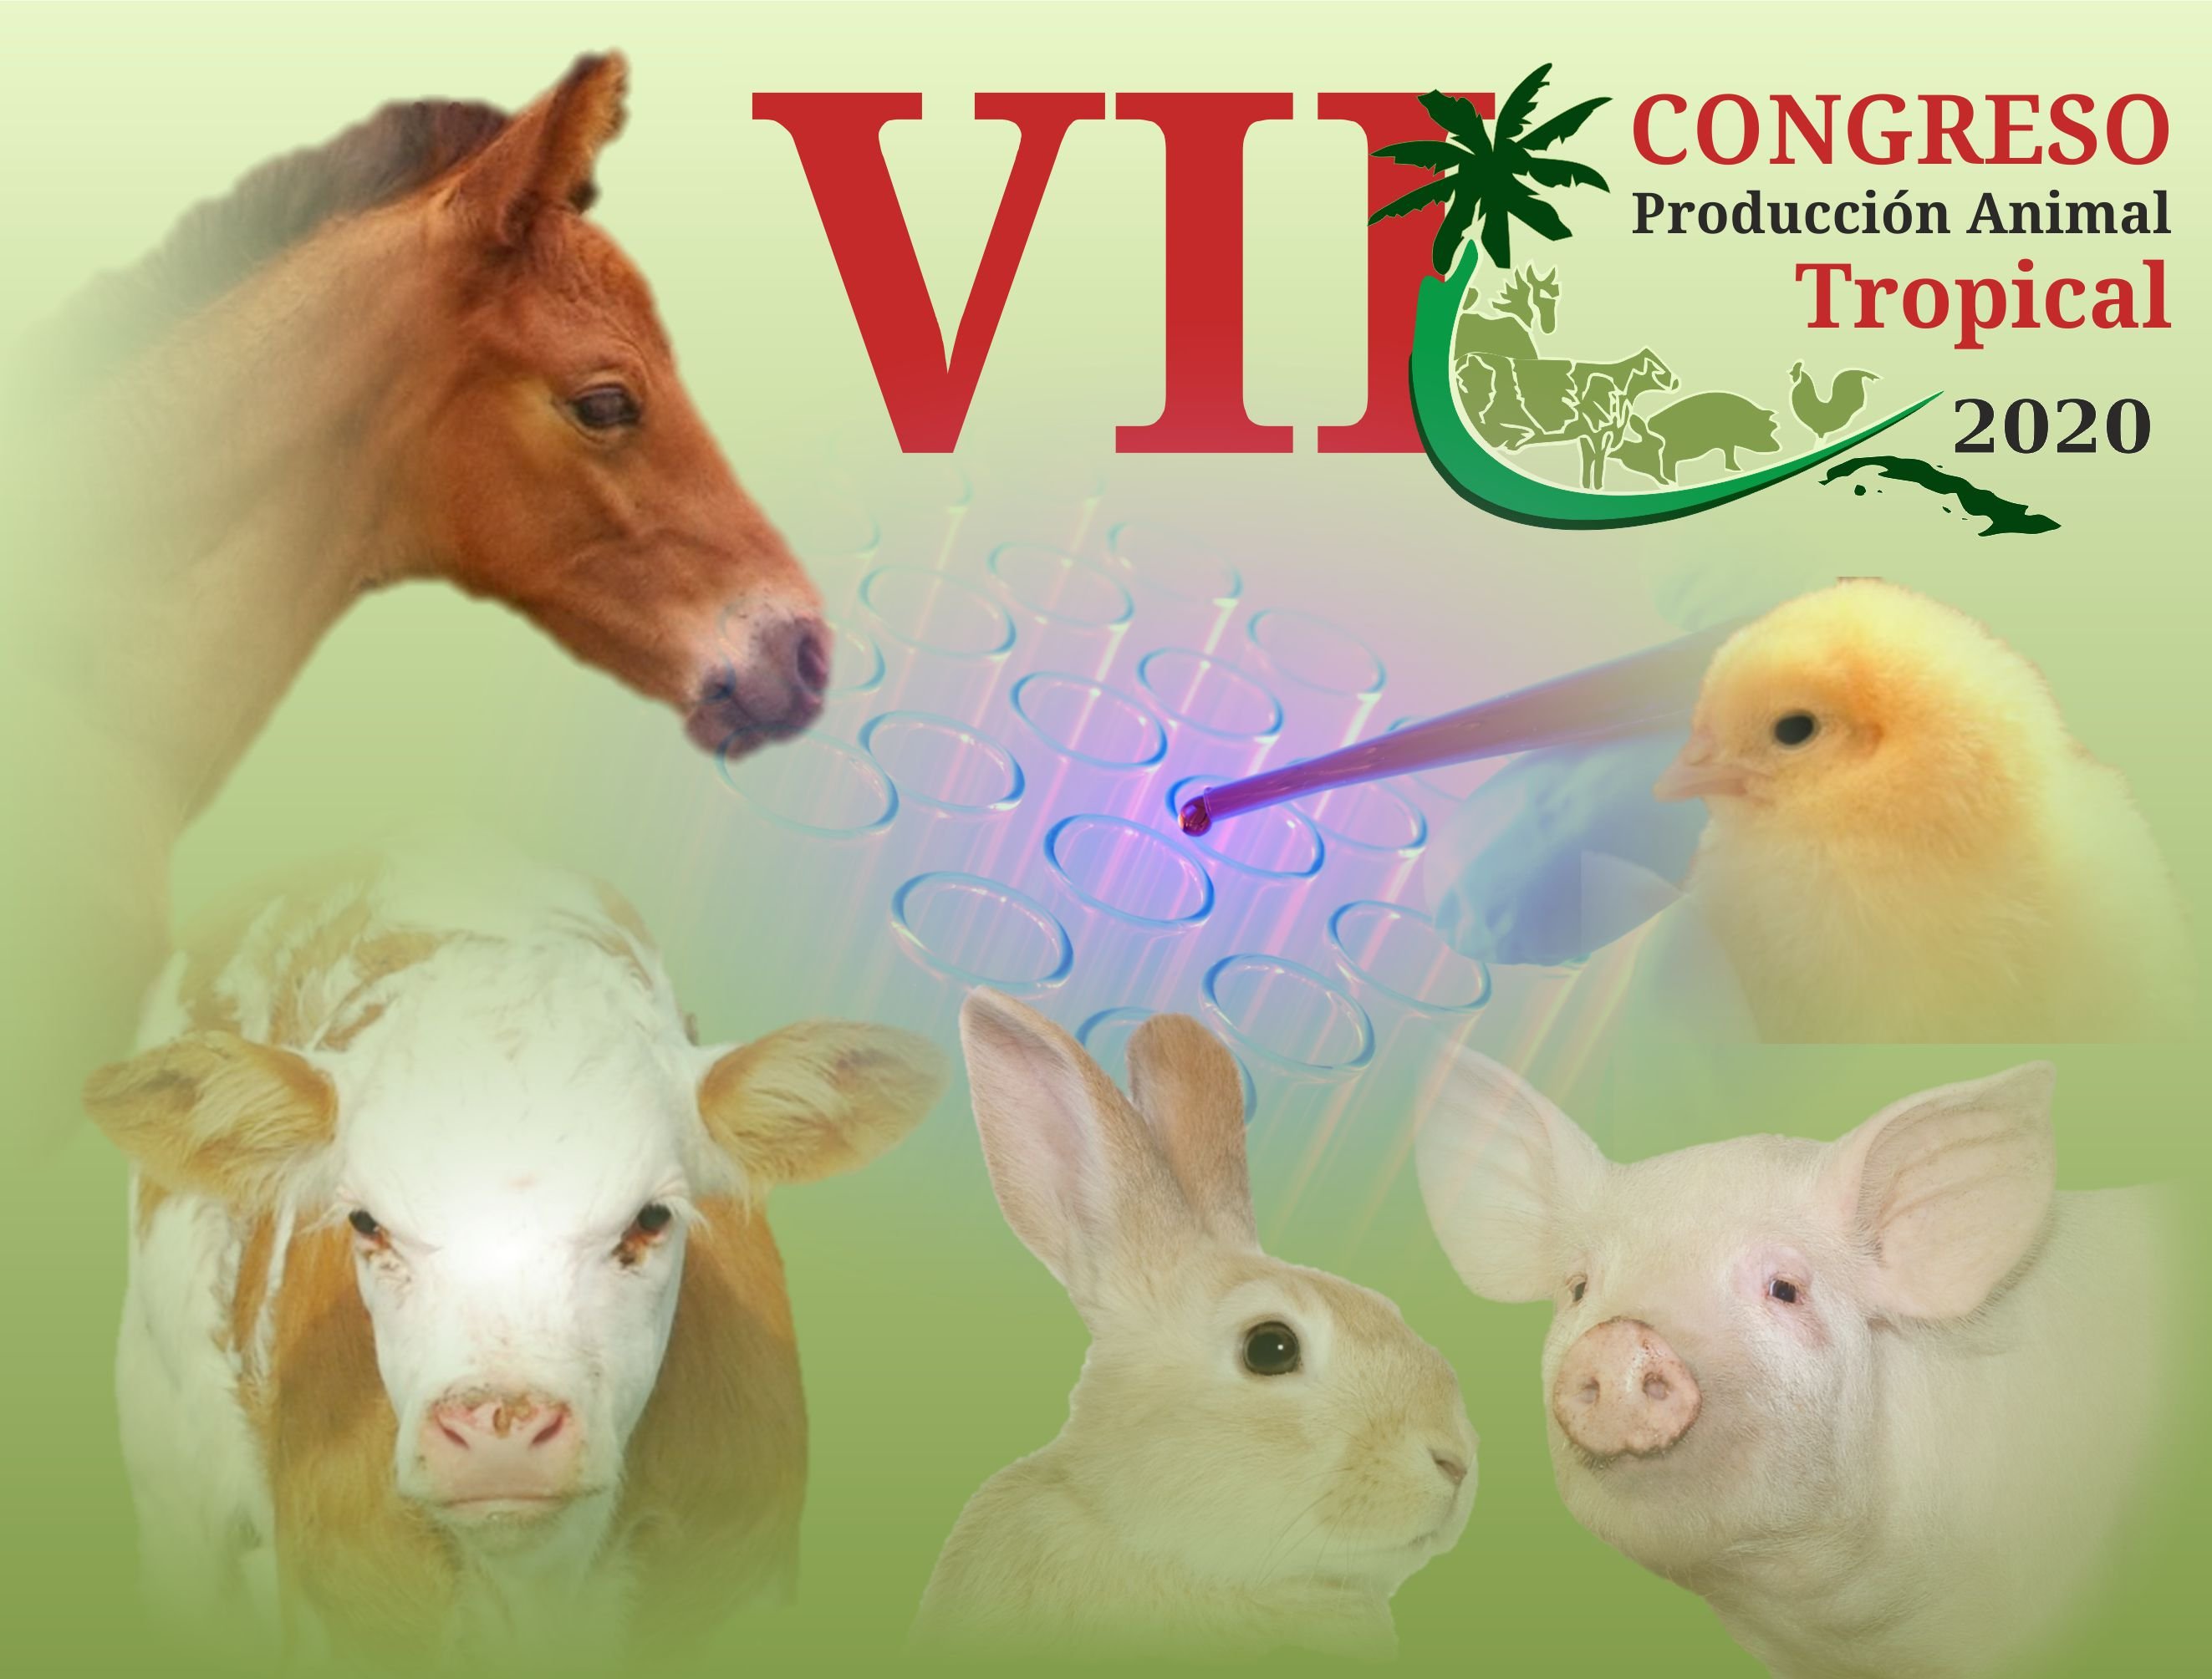 Eventos en Cuba - VII Congreso Internacional de Producción Animal Tropical 2020